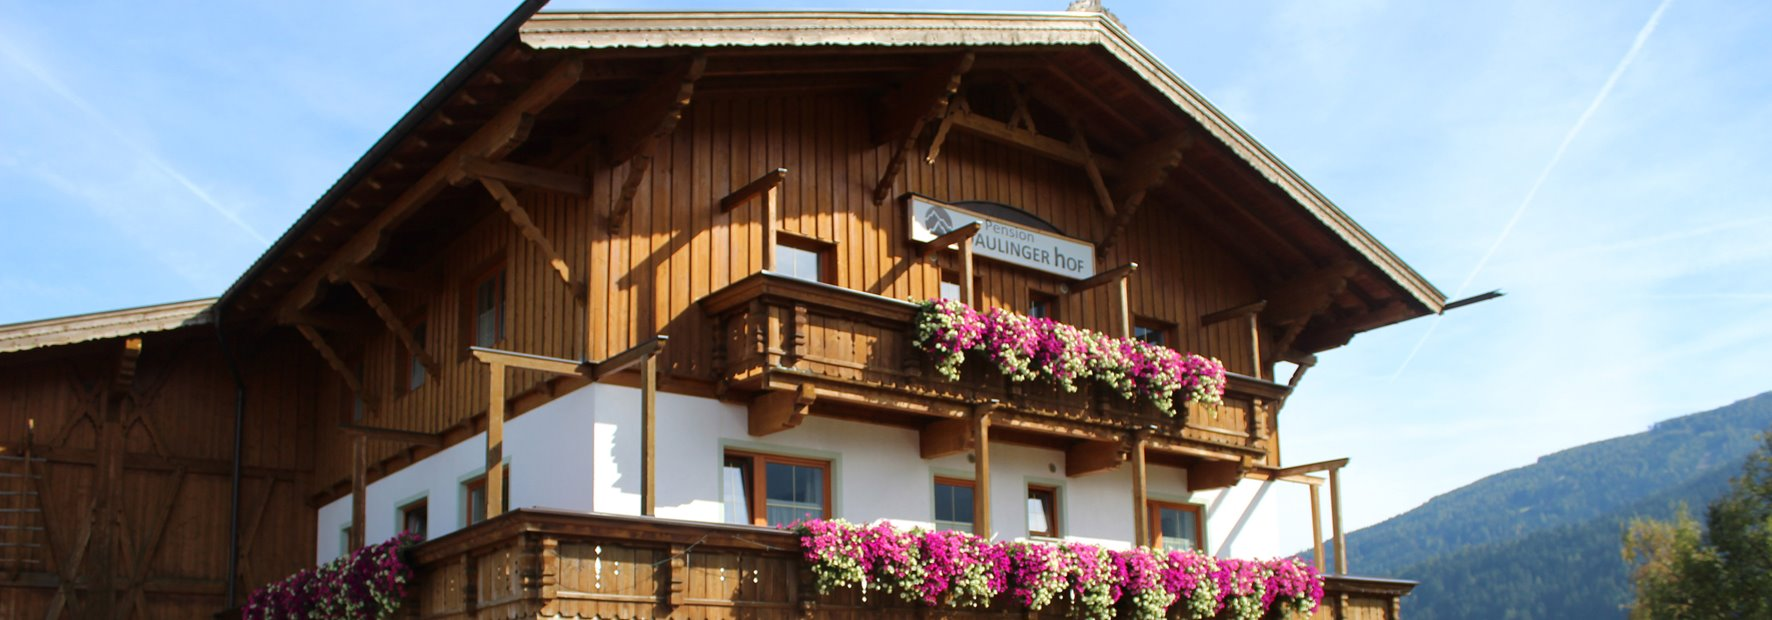 …unique holiday experiences at Paulingerhof…